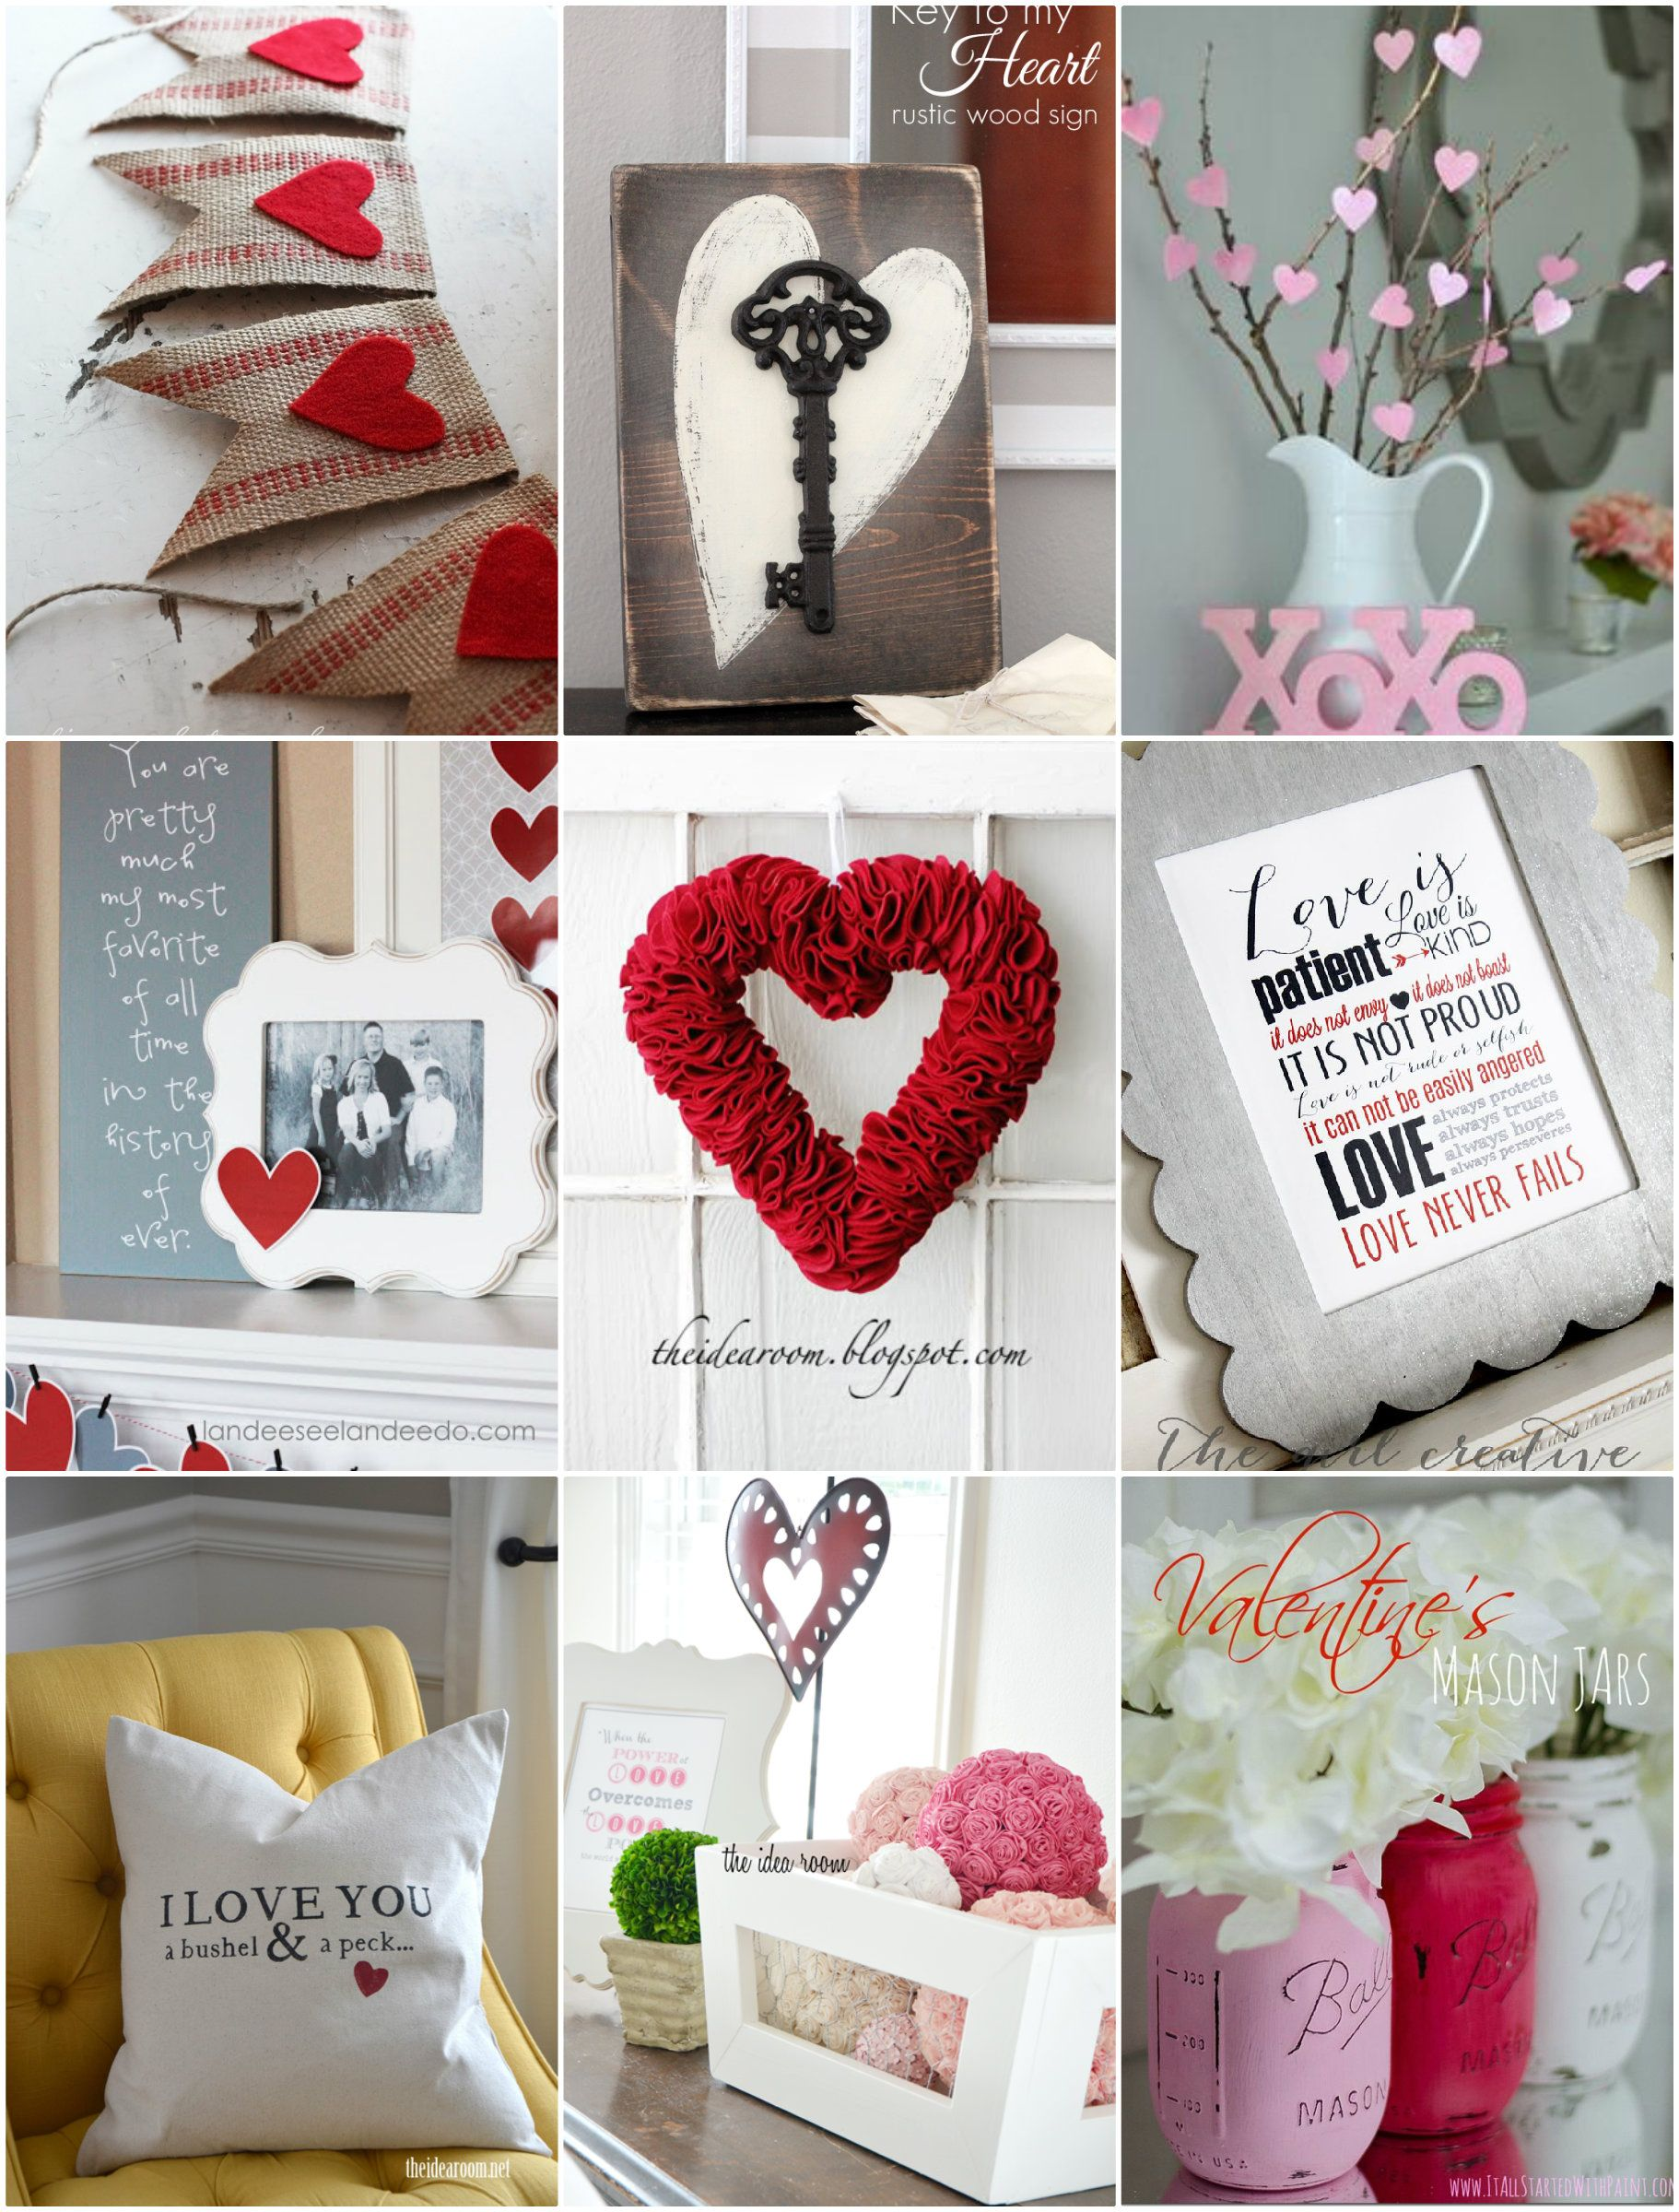 Unique Ideas For A Welcome Home Party Image - Home Decorating ...